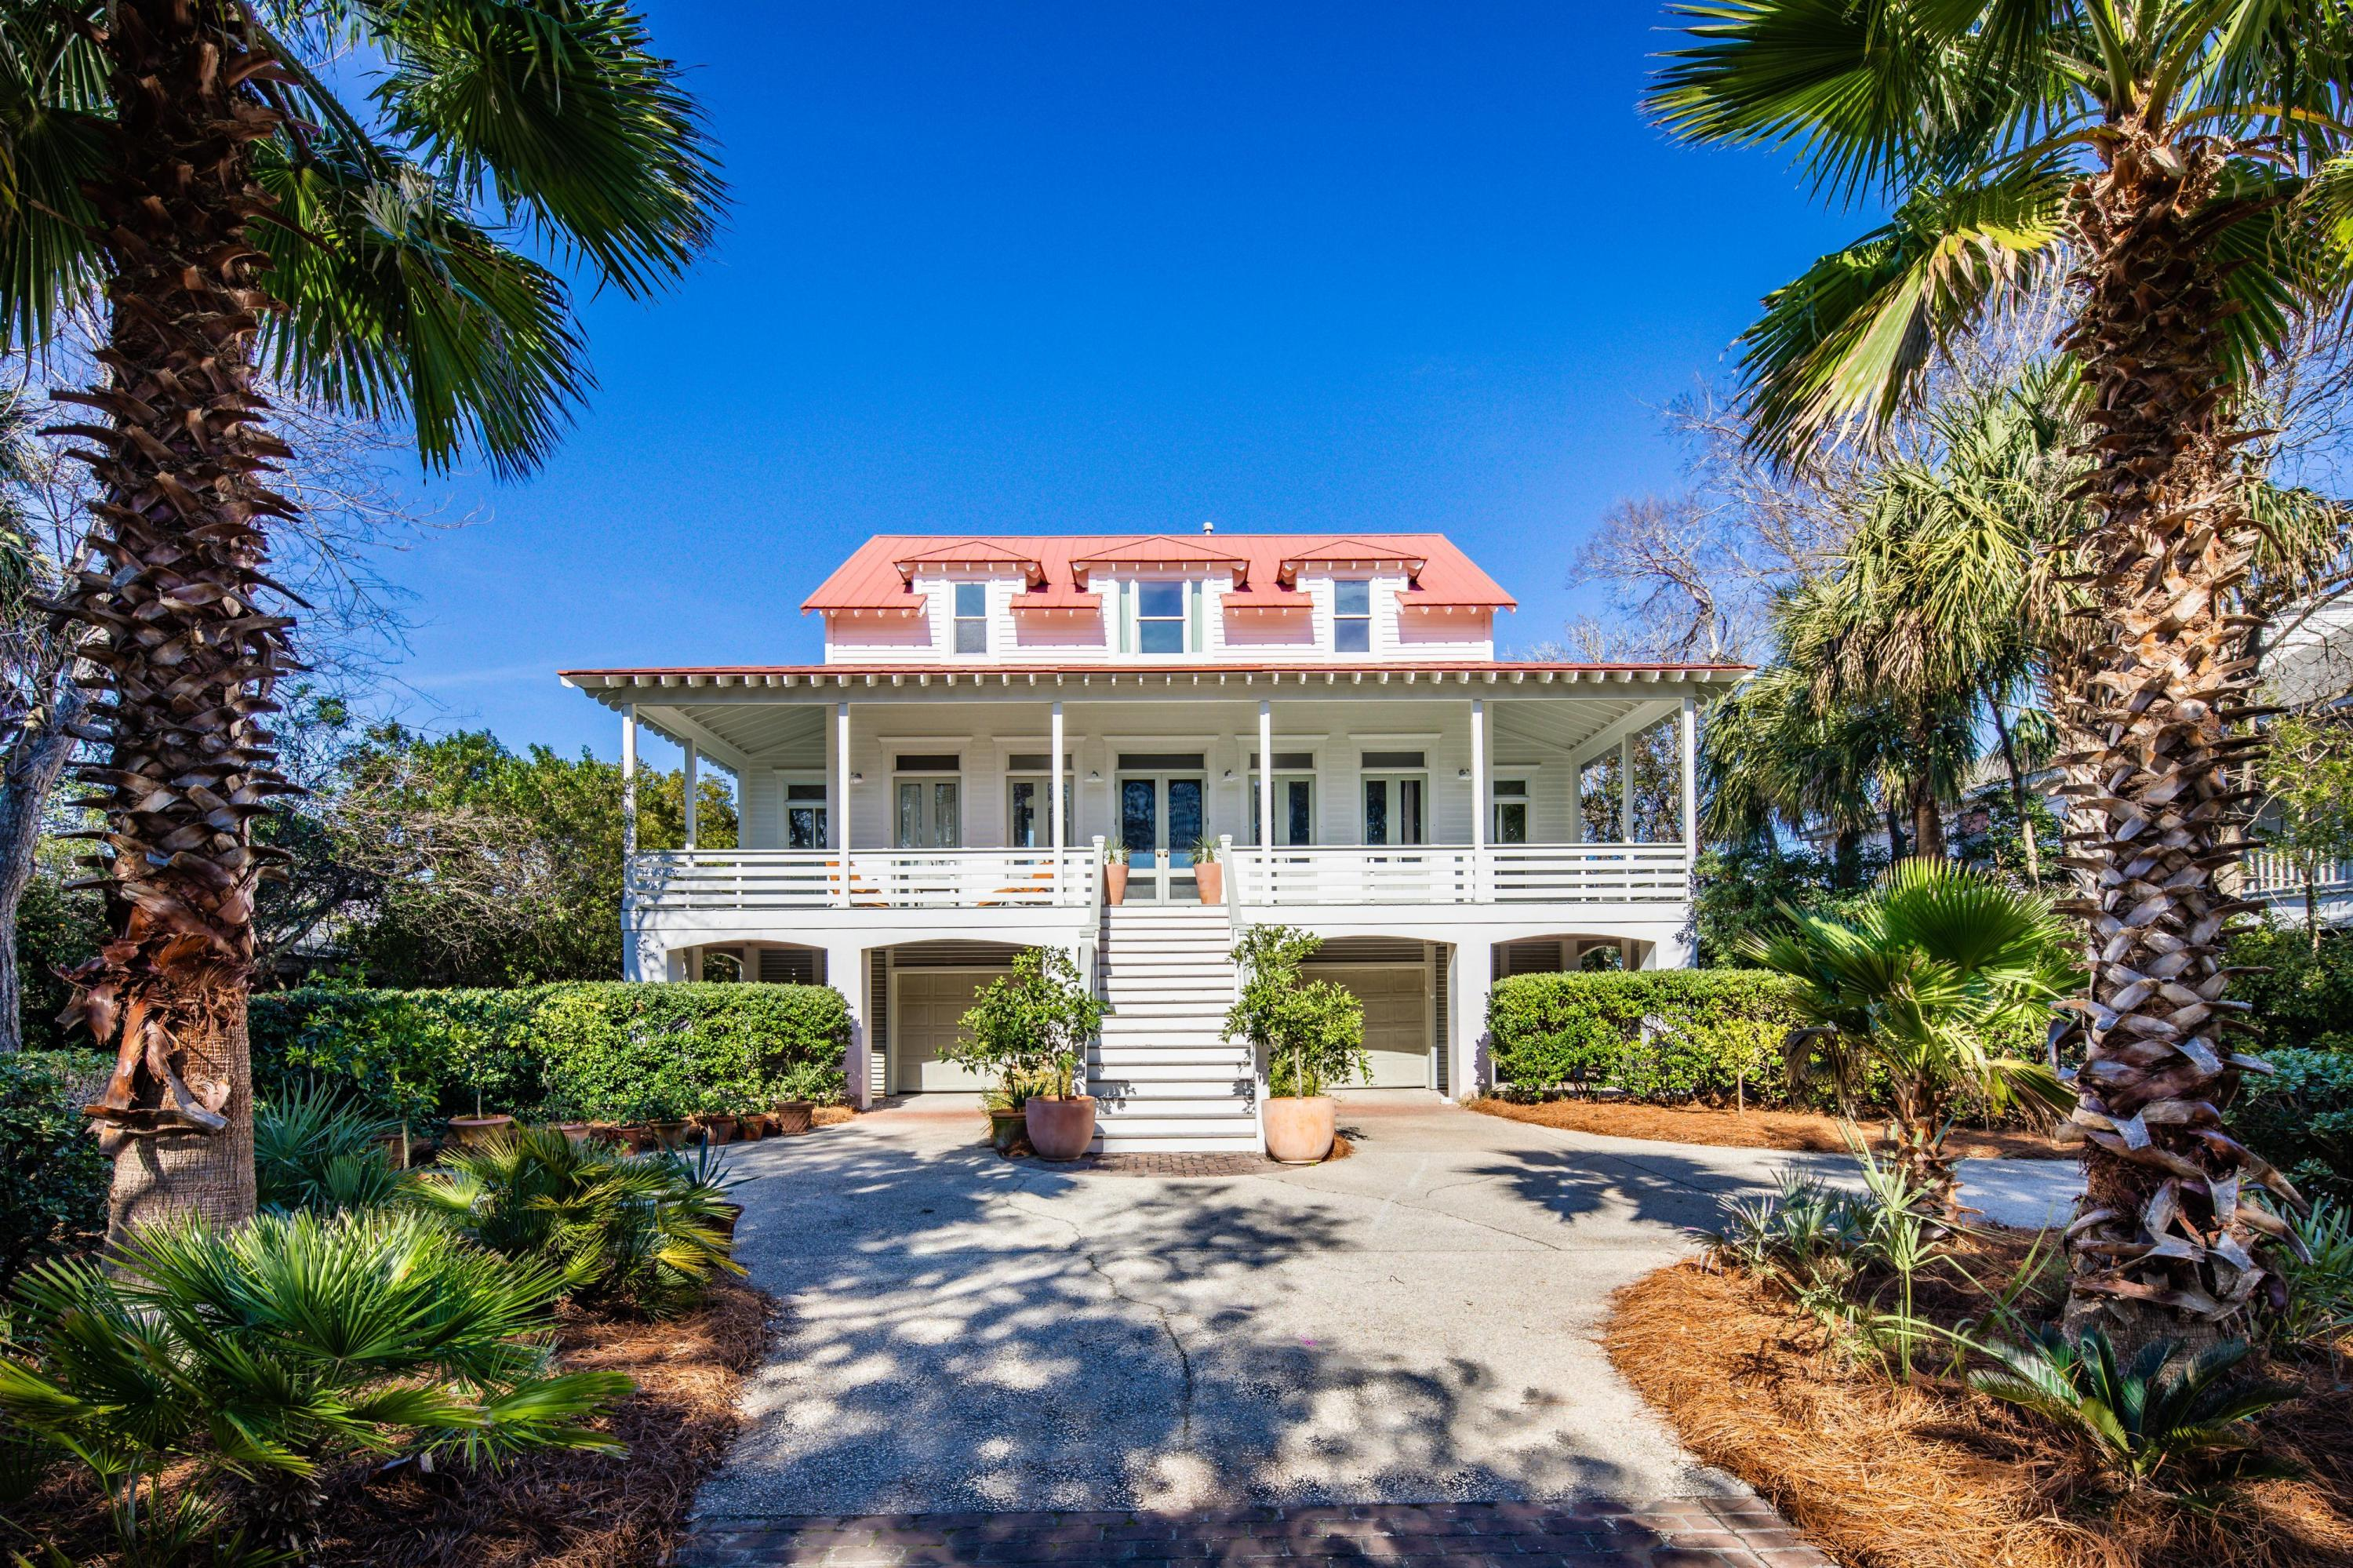 Sullivans Island Homes For Sale - 1734 Thompson, Sullivans Island, SC - 2